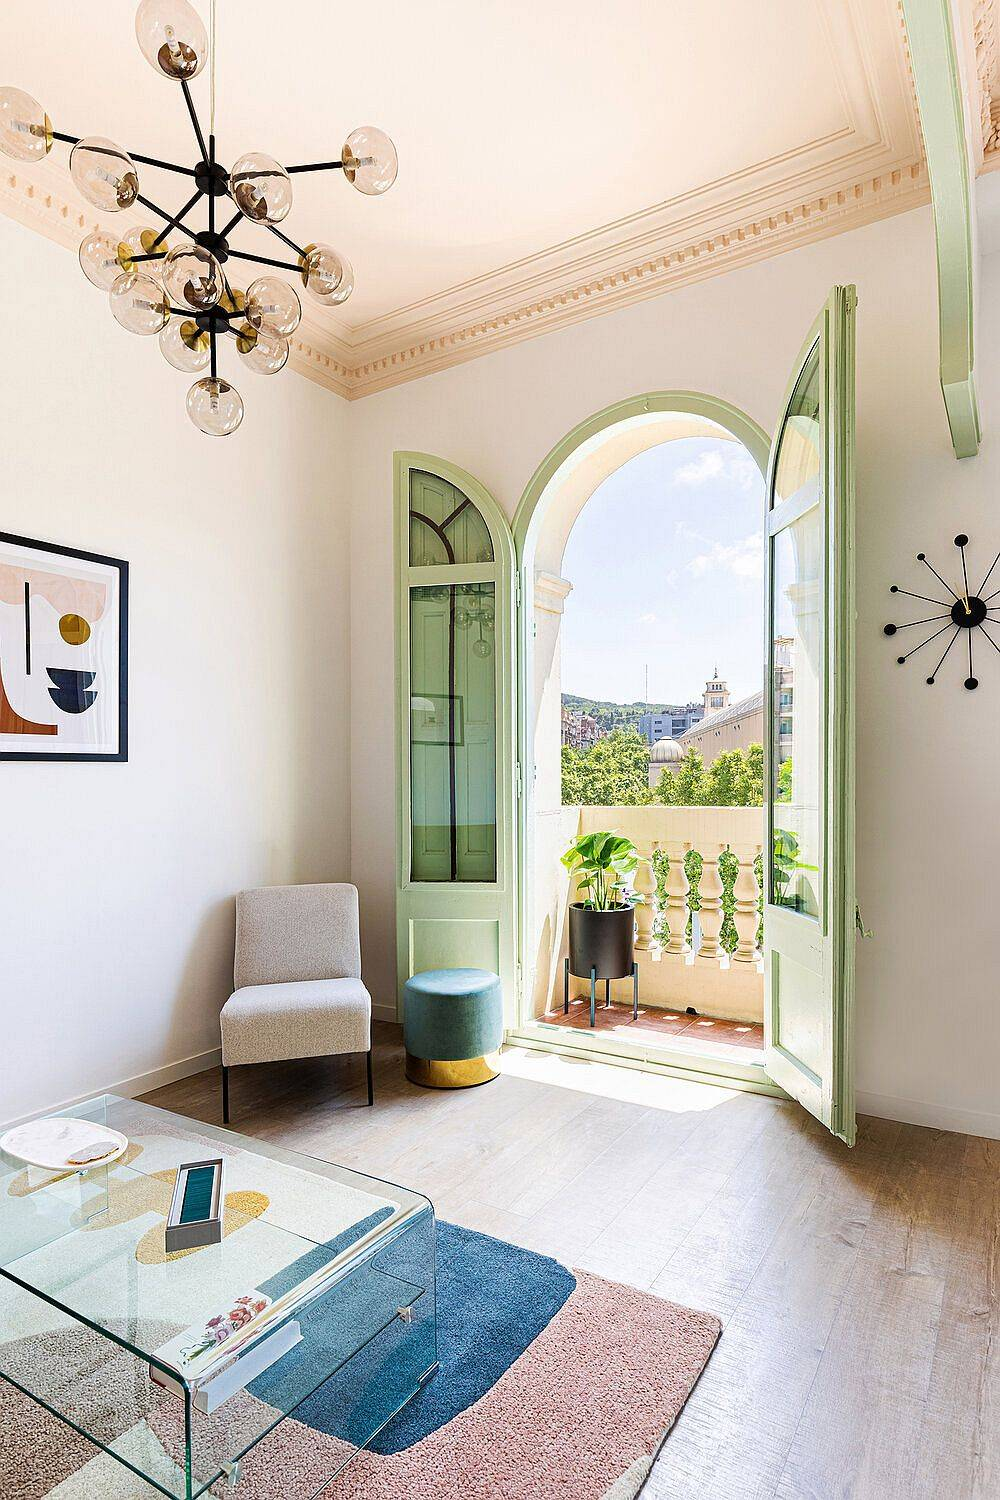 Ceiling-in-pastel-pink-along-with-classic-French-doors-in-pastel-green-give-the-room-a-fabulous-visual-appeal-14025